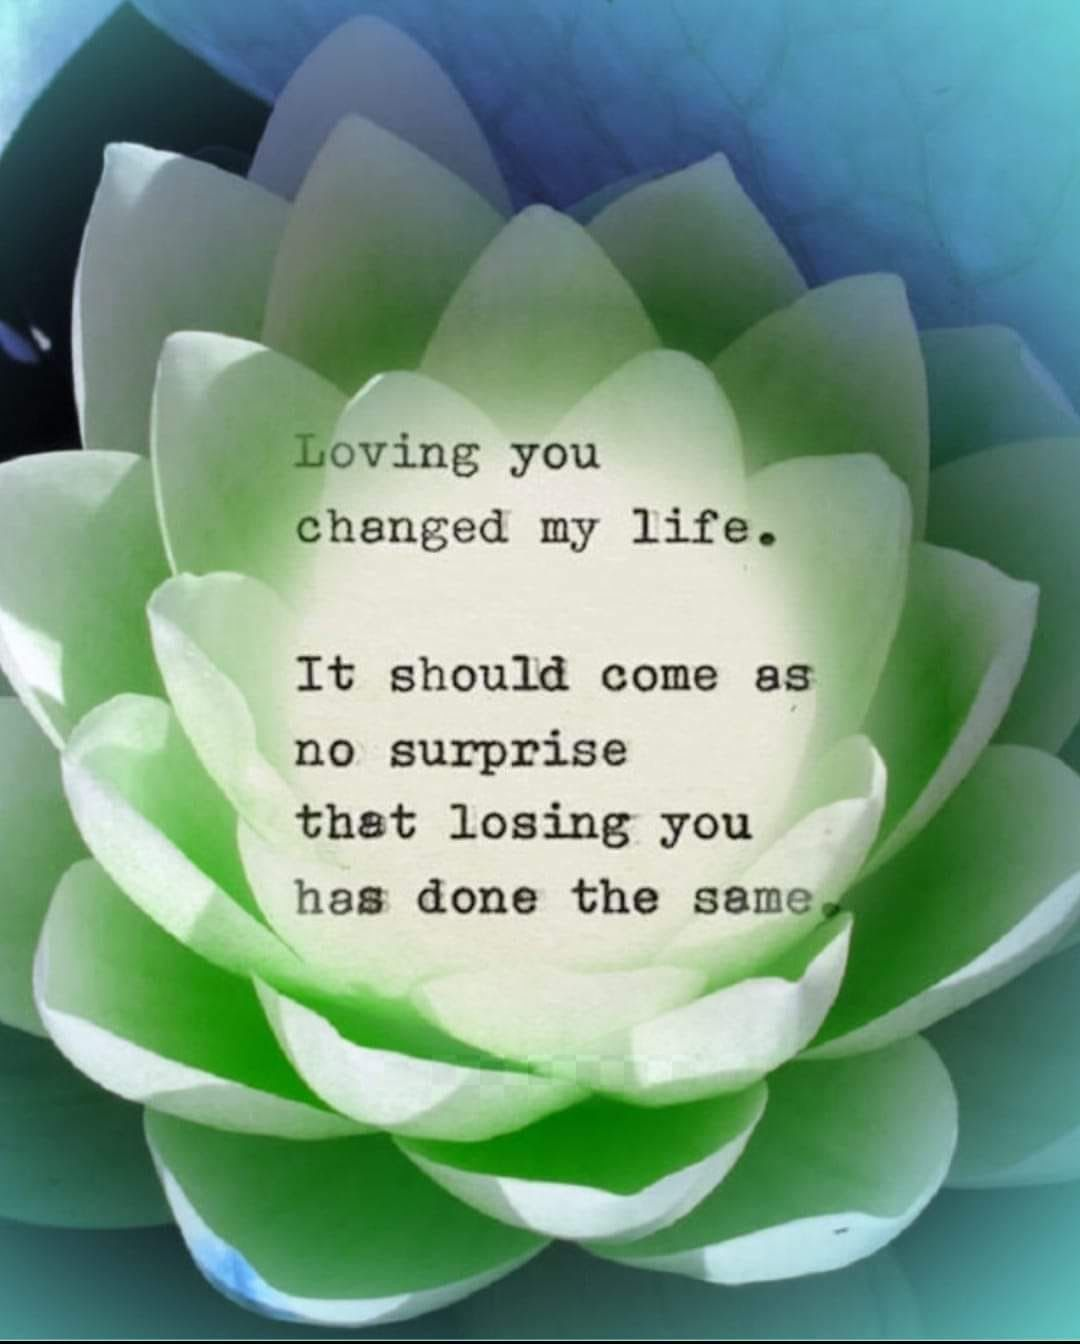 Loving you changed my life. It should come as no surprise that